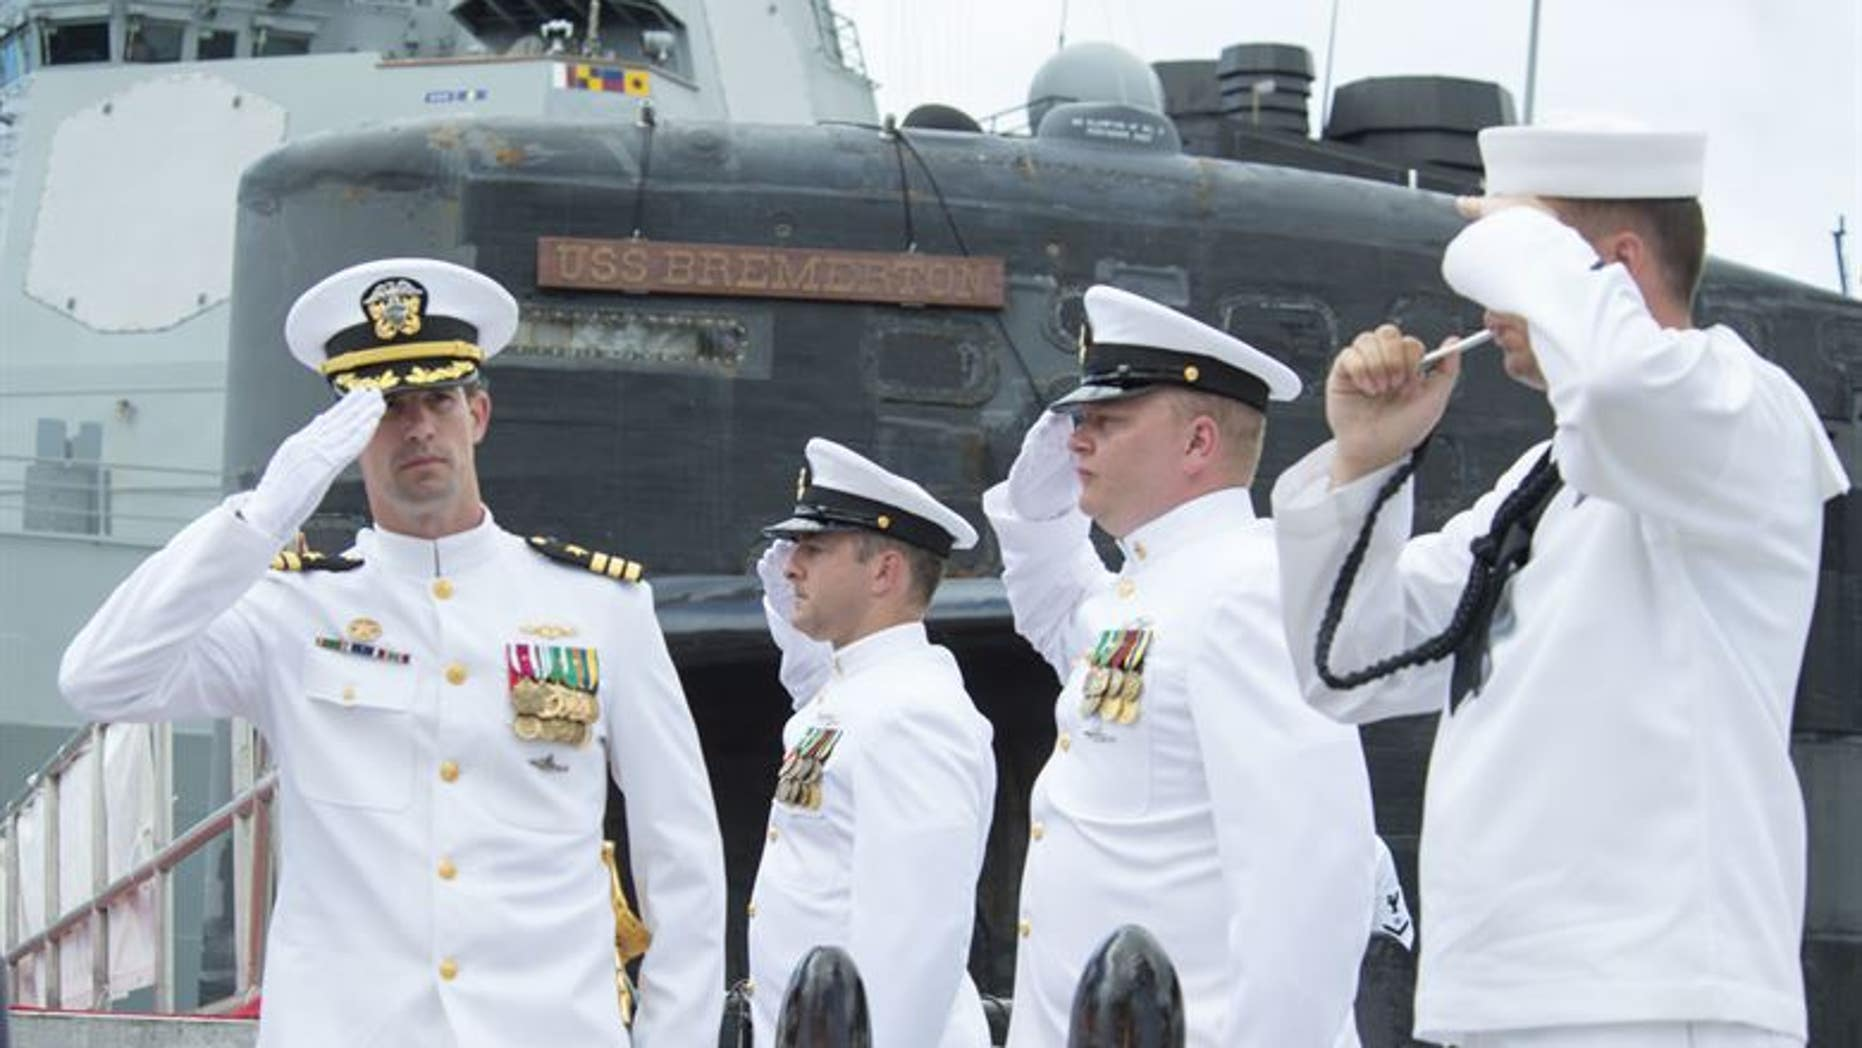 Cmdr. Travis W. Zettel (left), commanding officer of the Los Angeles-class fast-attack submarine USS Bremerton (SSN 698), salutes sideboys during a change of command ceremony on Joint Base Pearl Harbor-Hickam.